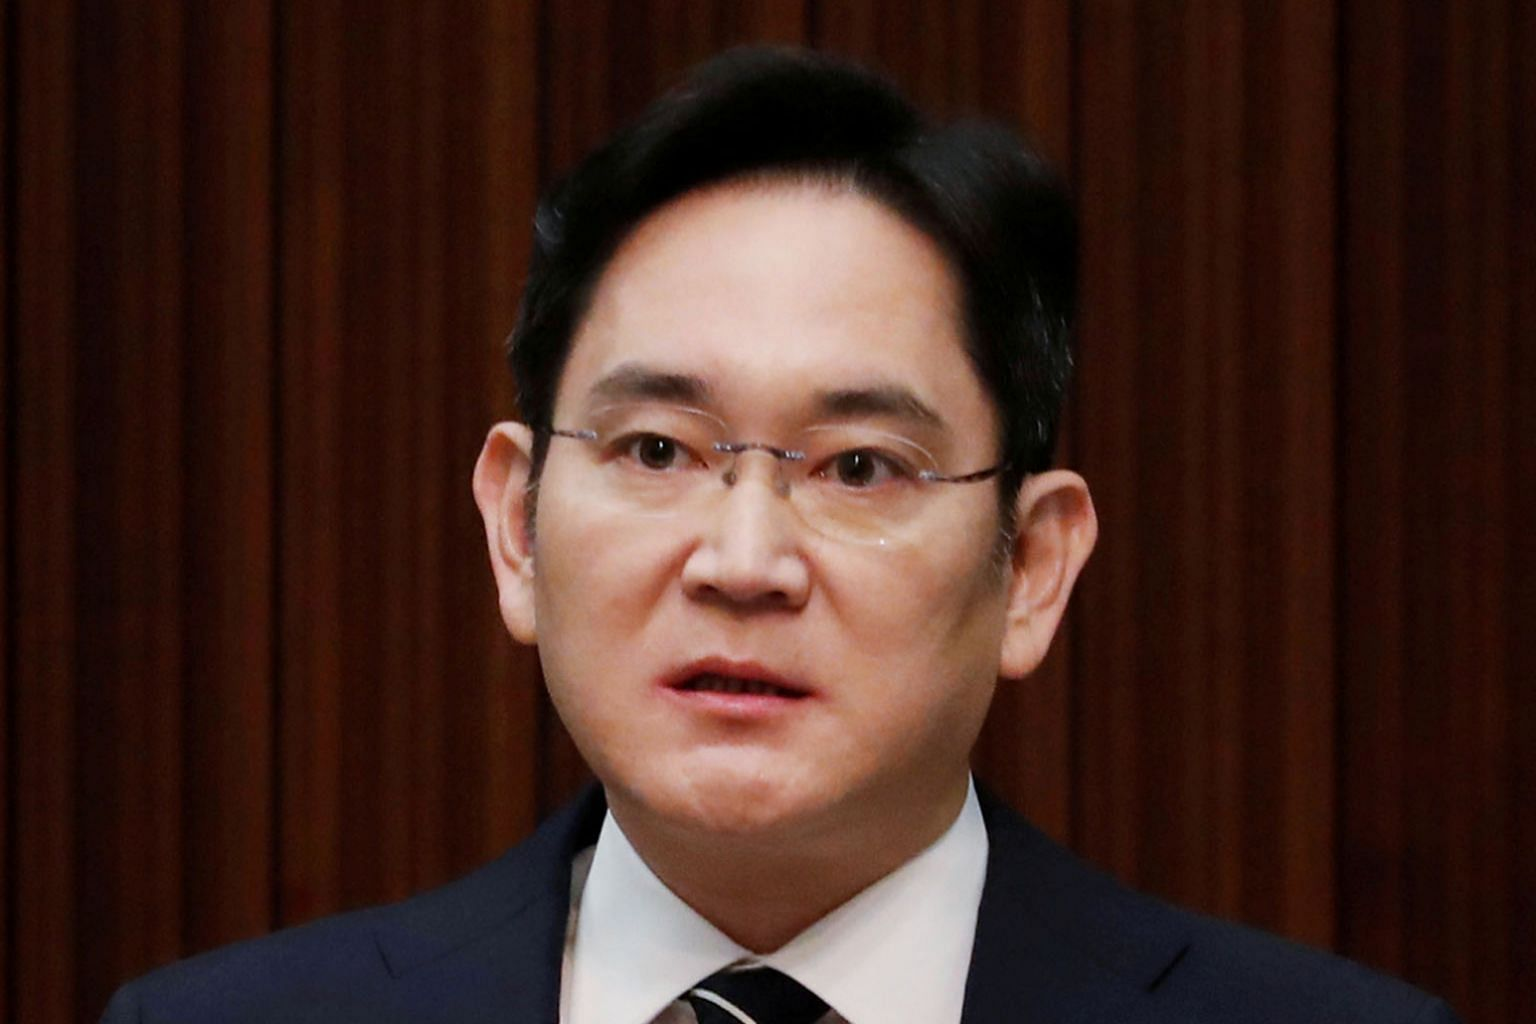 Samsung Group heir Jay Y. Lee is already facing trial over a charge of bribery.